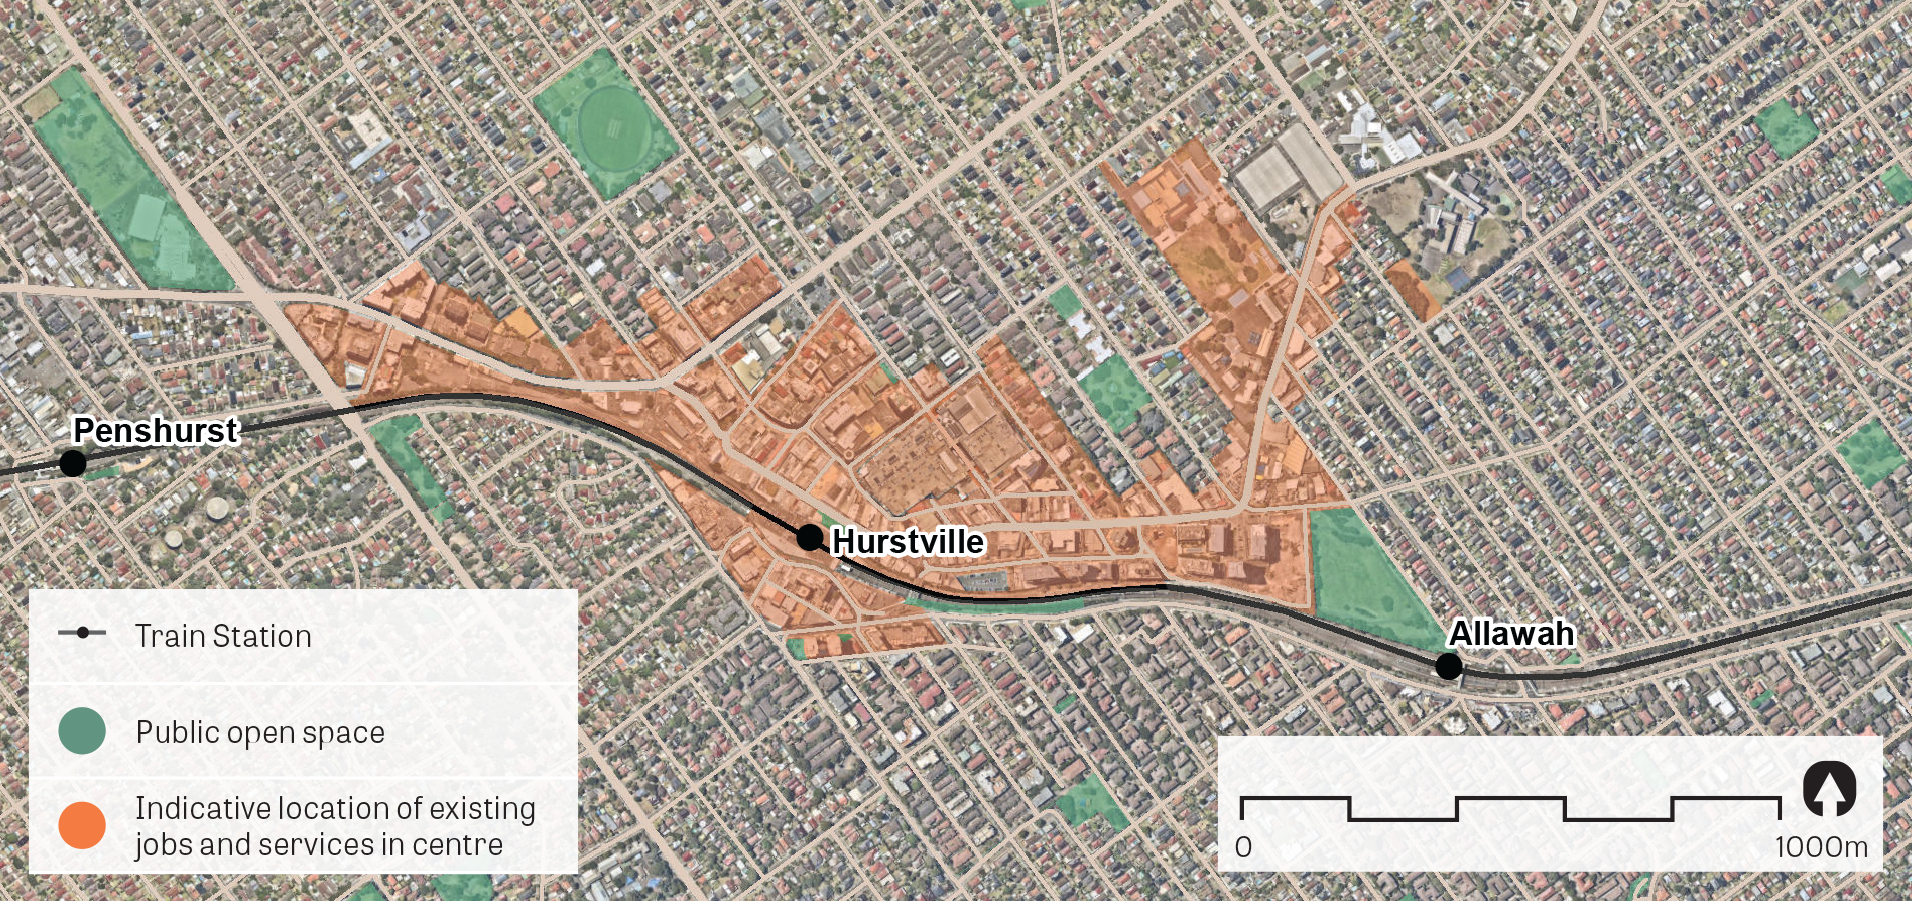 An aerial image of Hurstville showing the principal areas containing jobs and services.